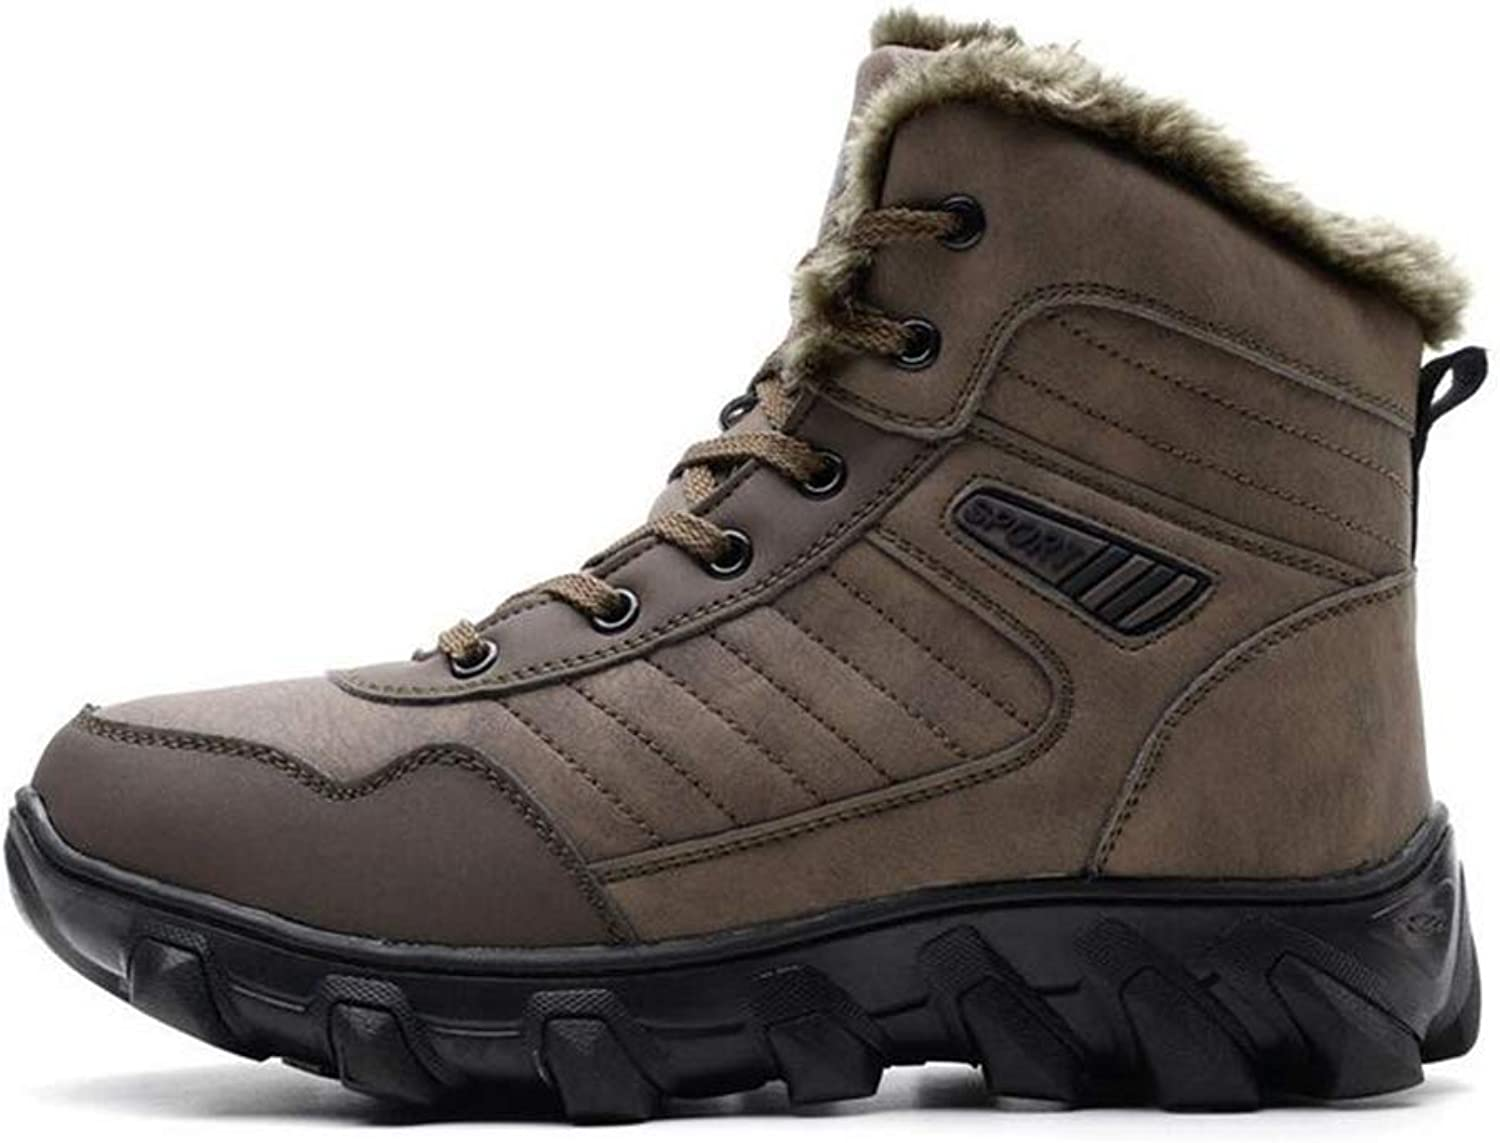 Y-H Men's Snow Boots, Winter Outdoor Hiking shoes, Plus Velvet Warm Climbing Sneakers Skiing shoes Winter Boots (color   Brown, Size   38)